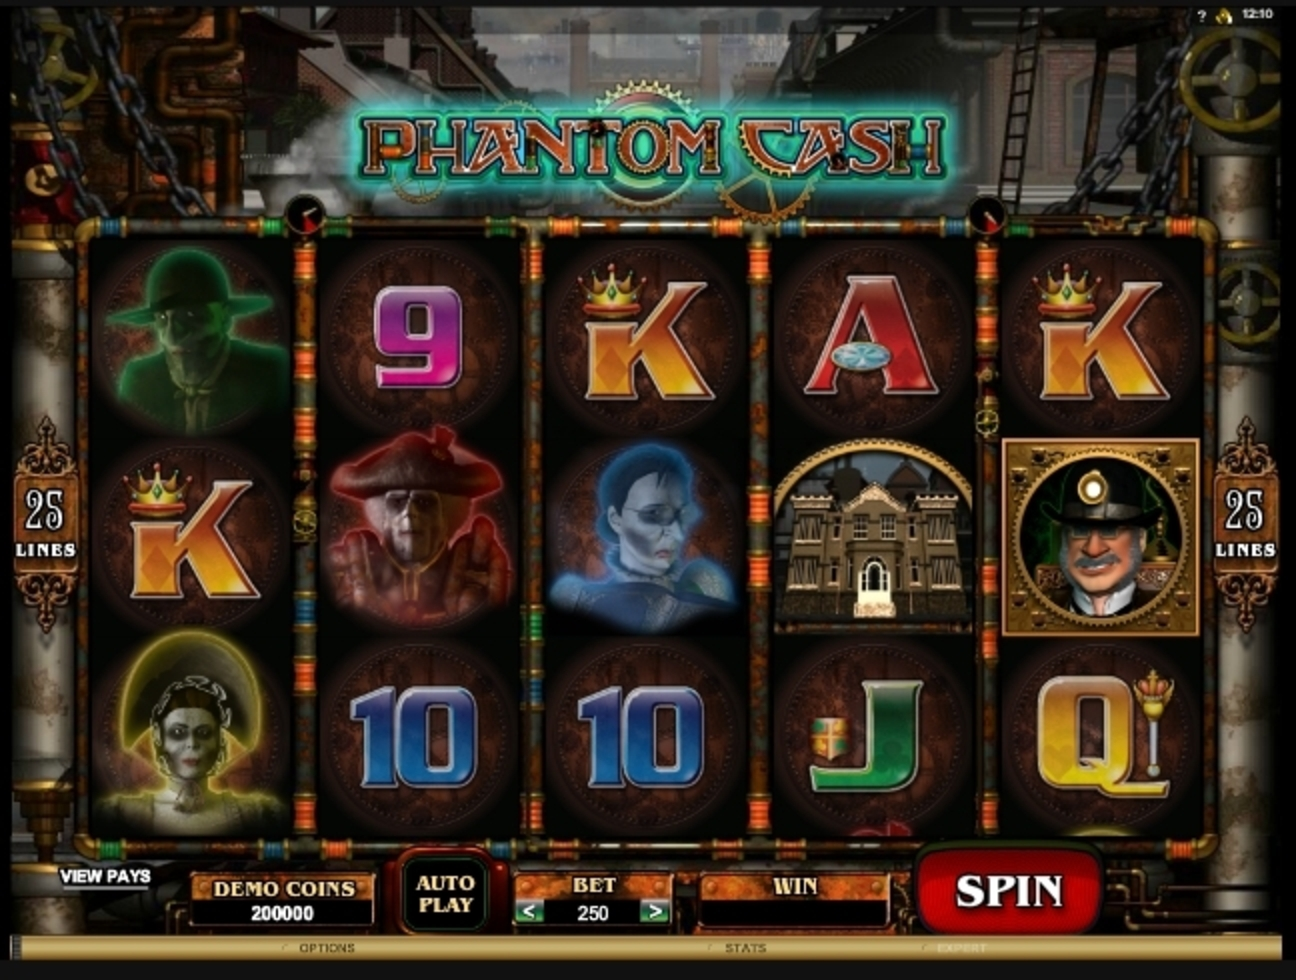 Reels in Phantom Cash Slot Game by Microgaming